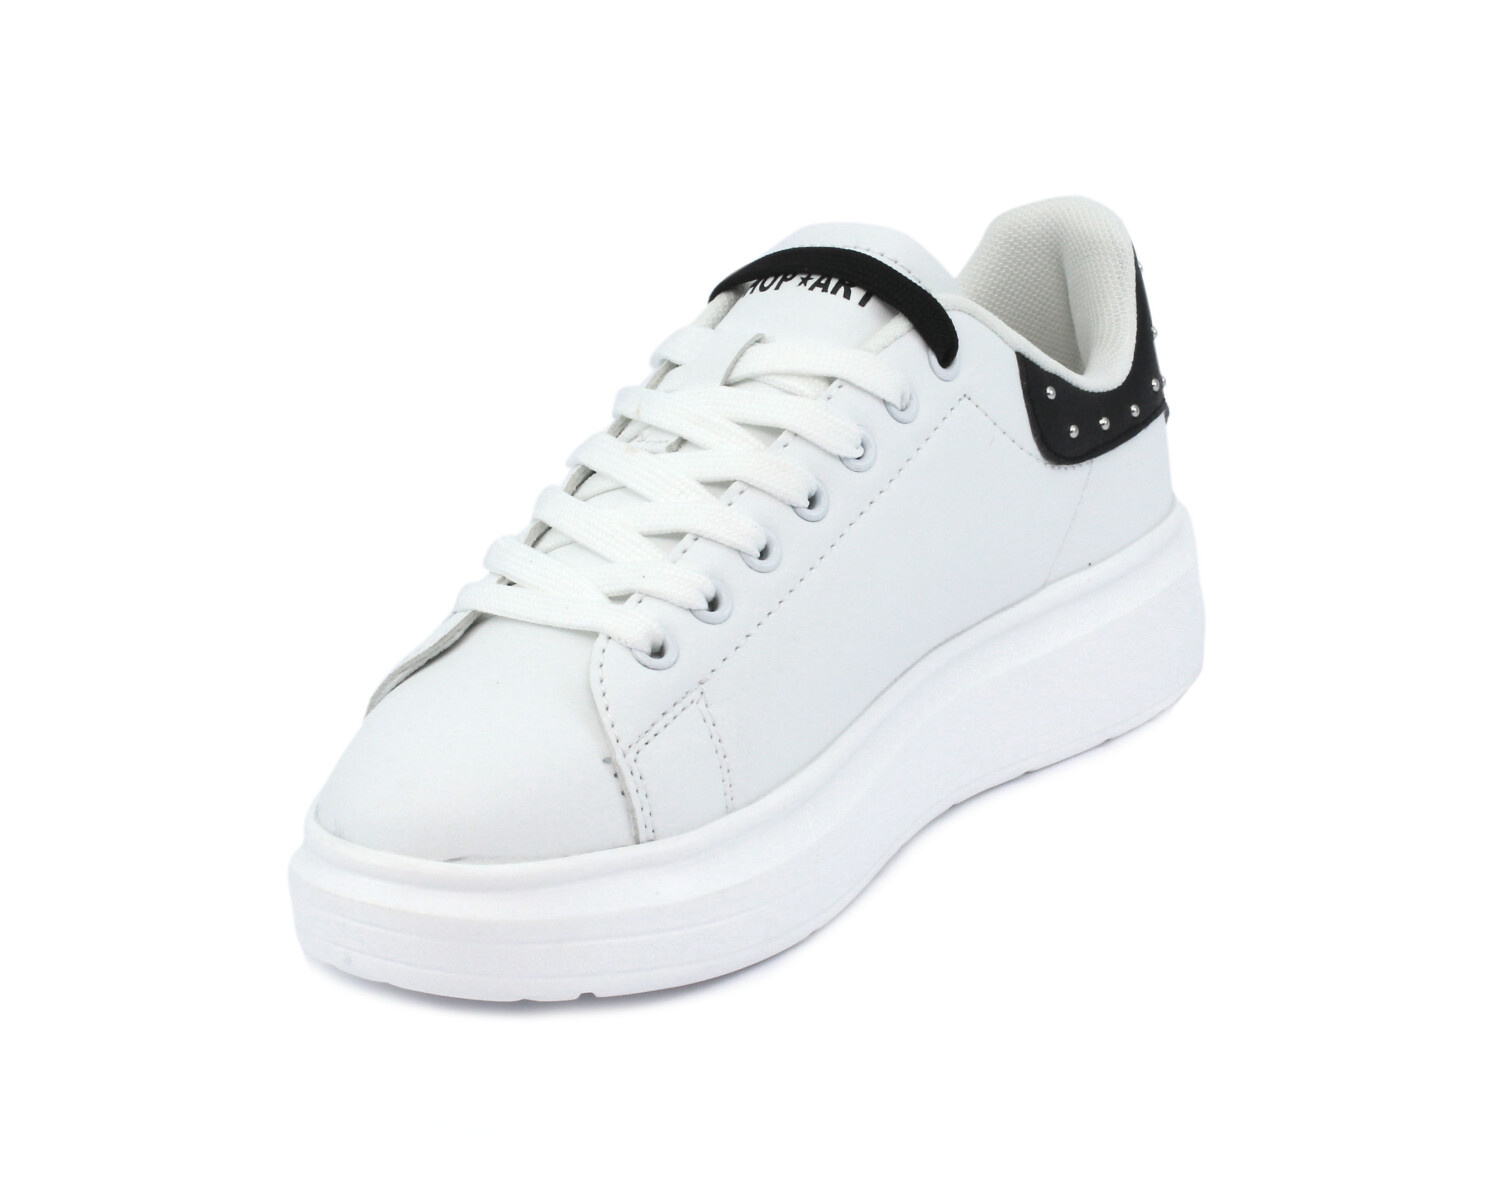 Sneaker SHOP ART 030002 WHITE/NERO